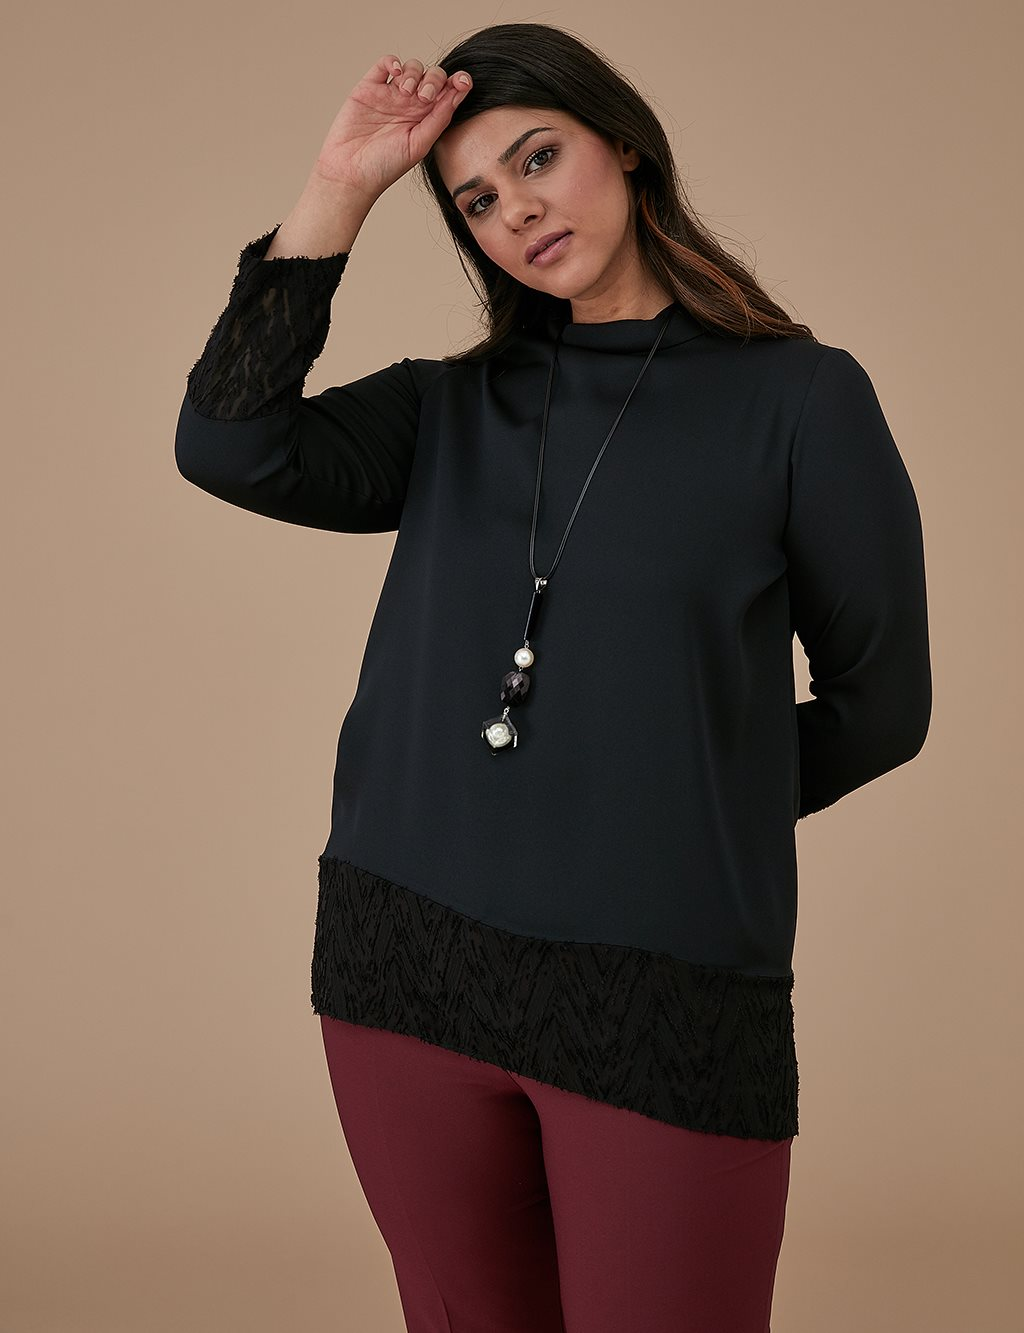 Blouse With Necklace A9 10032 Black